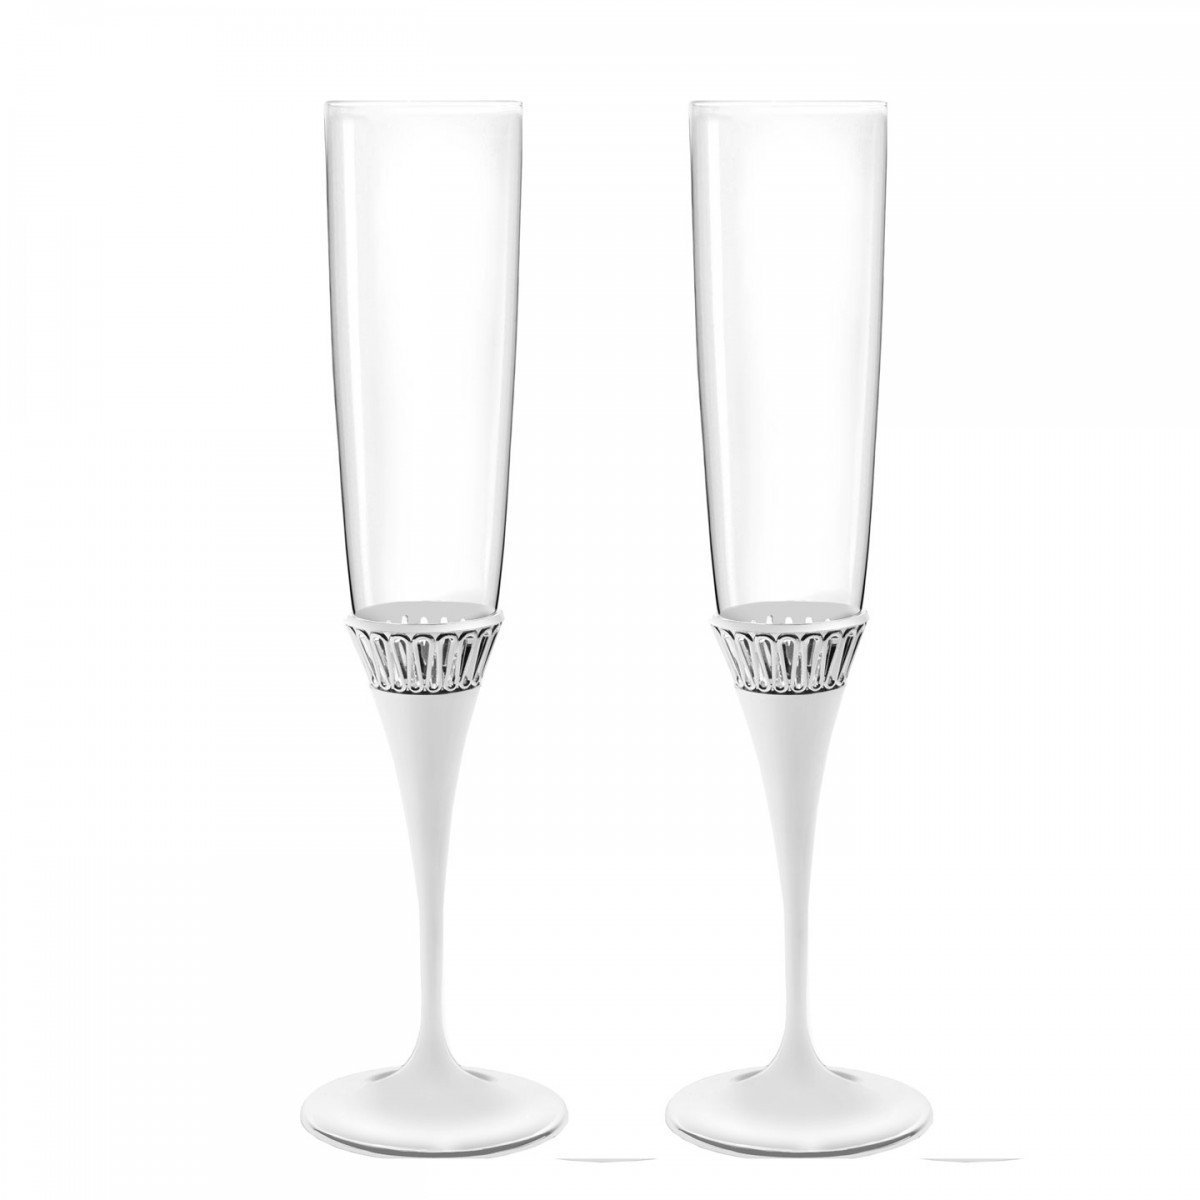 Waterford Monique Lhuillier Opulence Toasting Flutes Pair